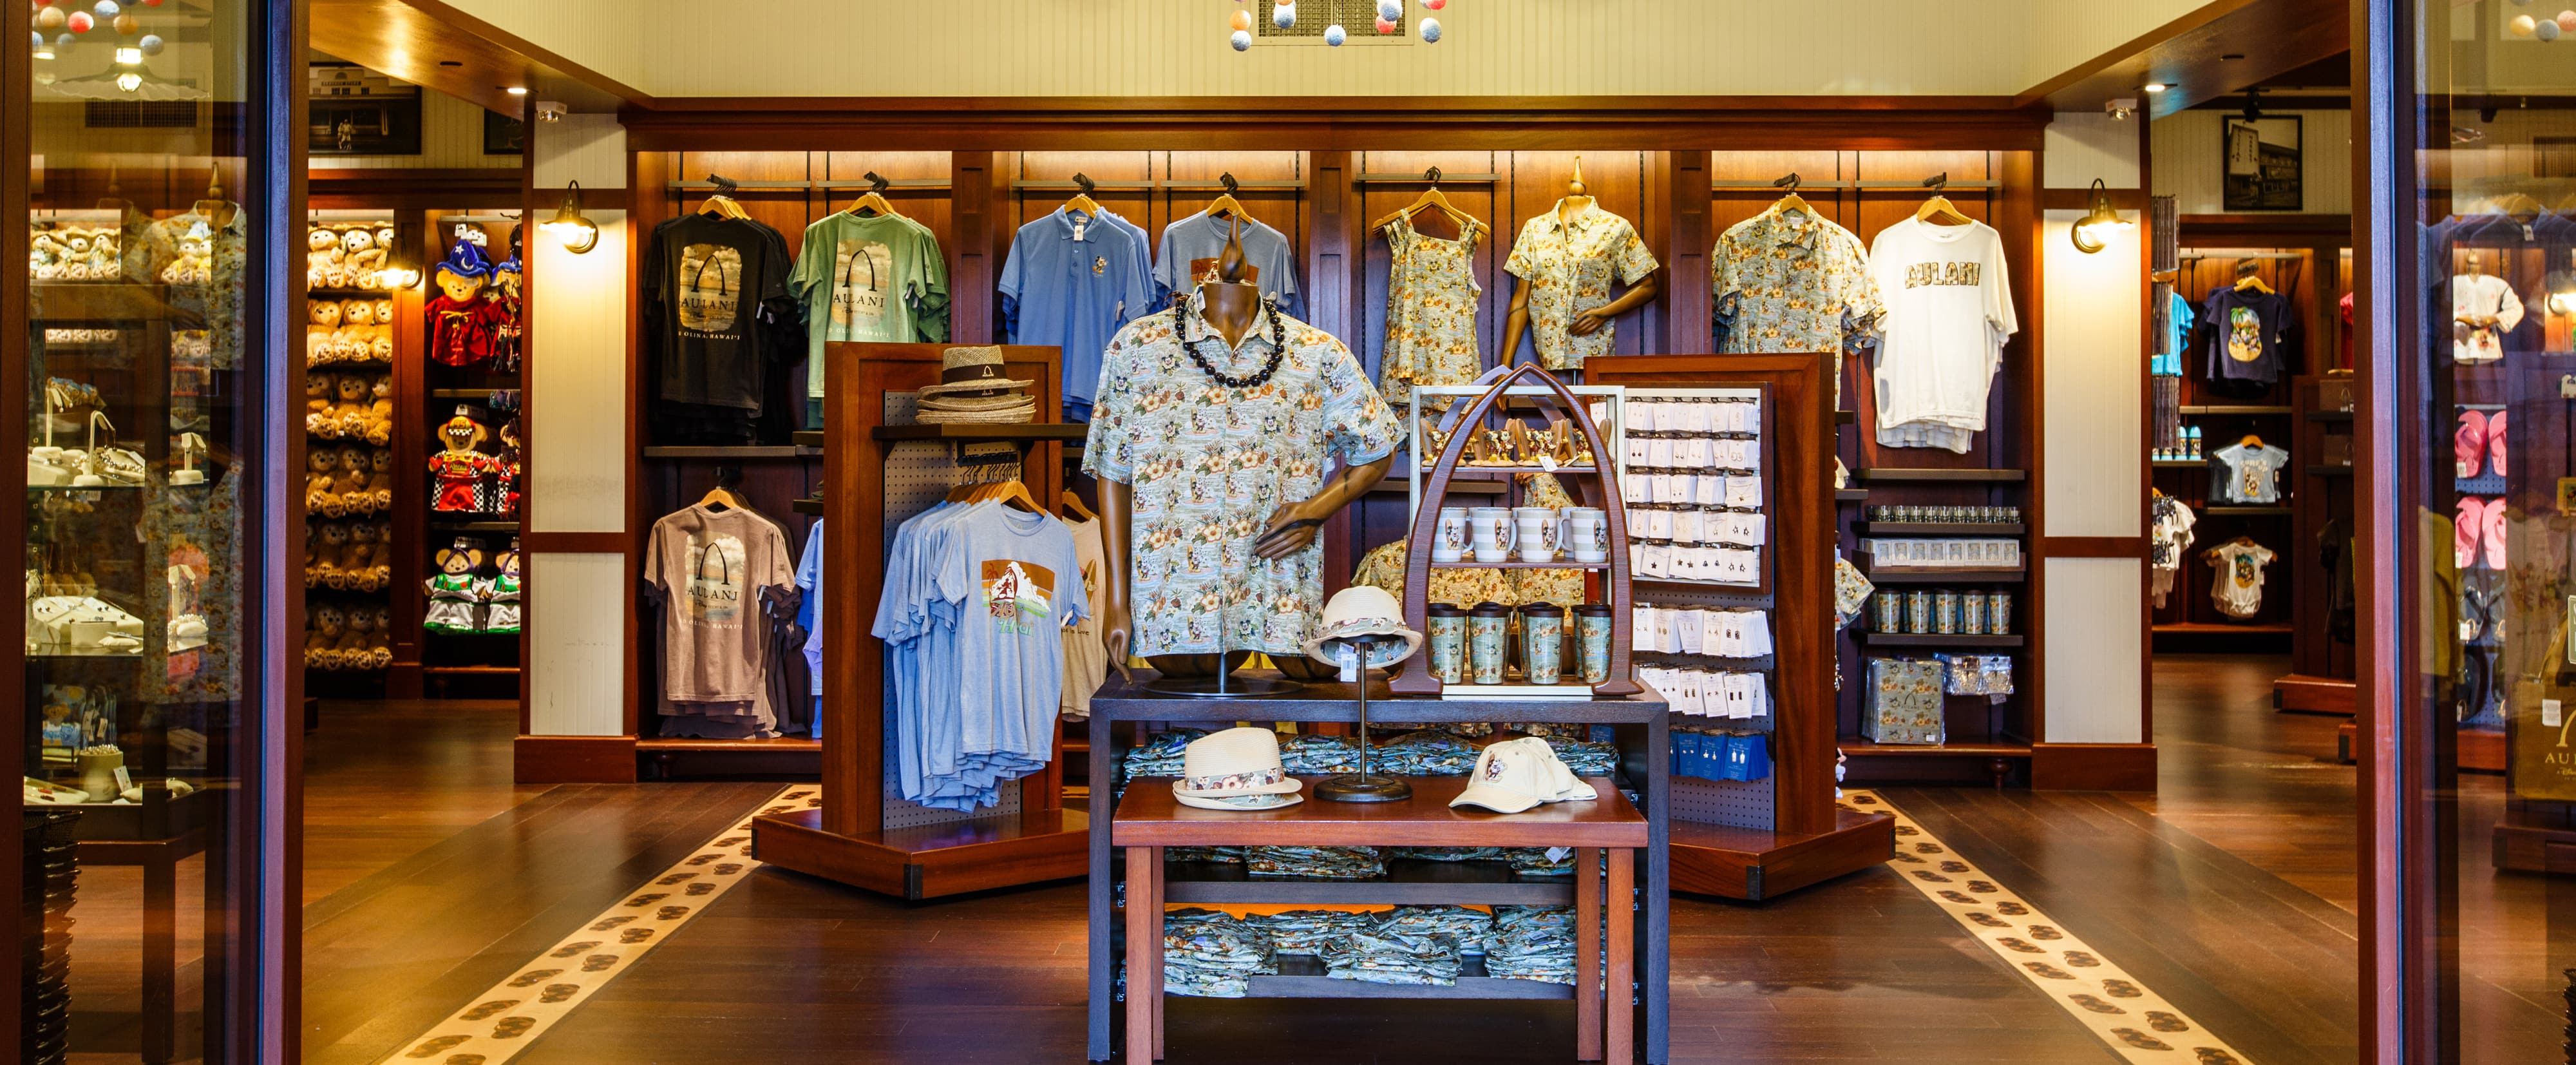 Disney-themed resort wear, mugs and jewelry displays inside Kalepa's Store, the Aulani Resort lobby gift shop